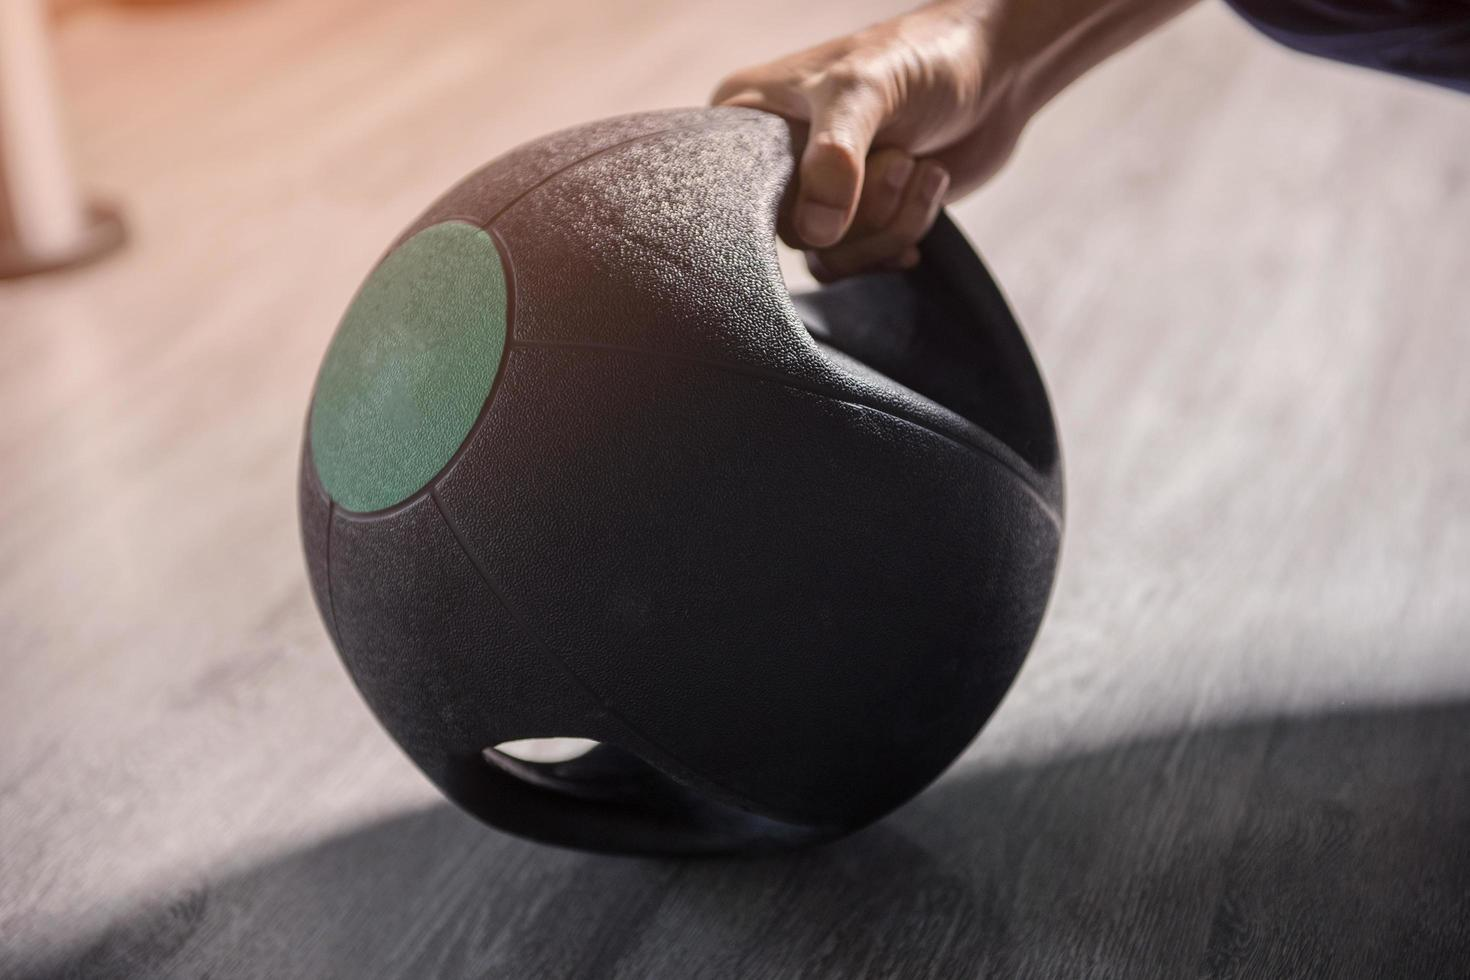 Closeup of hand holding weight in a gym photo